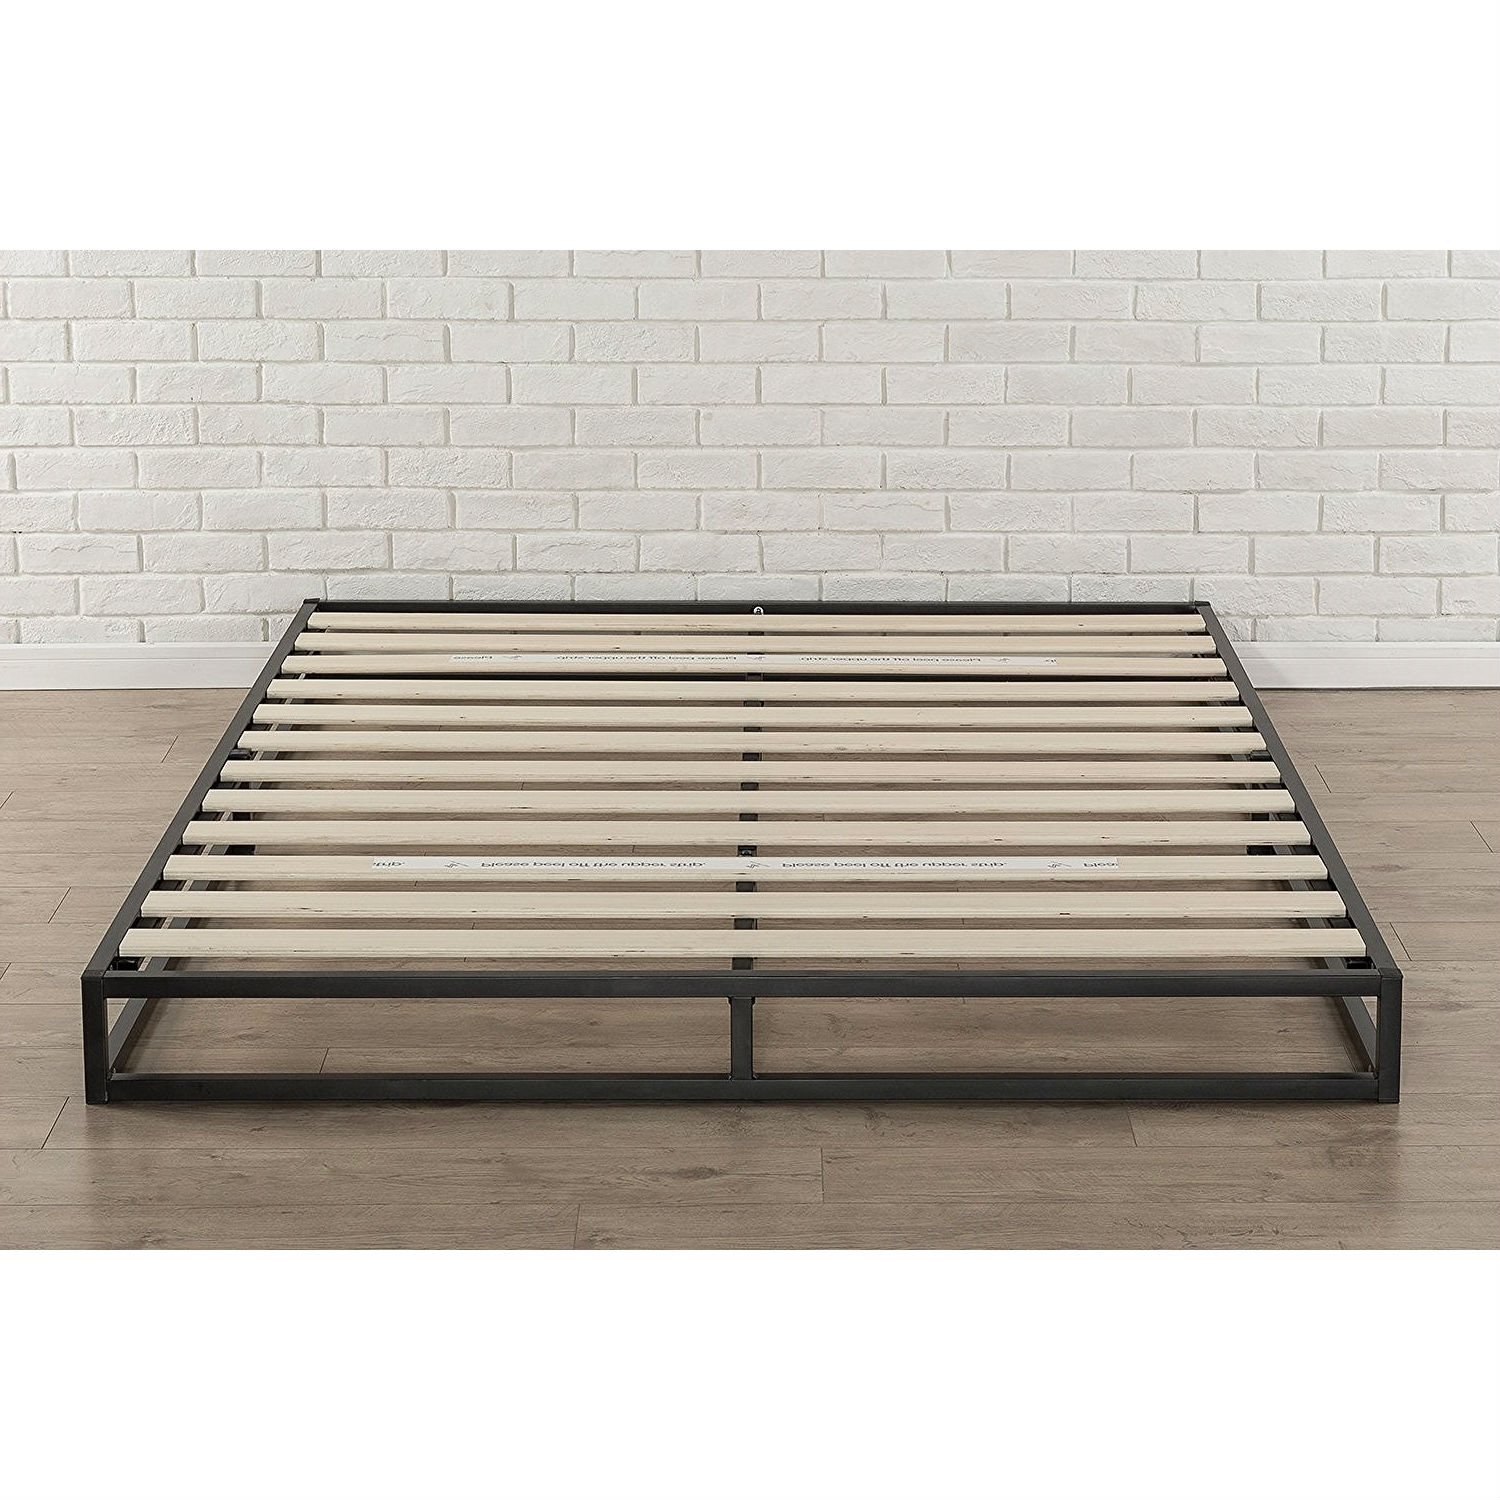 Astounding Full Size 6 Inch Low Profile Metal Platform Bed Frame With Wooden Slats Creativecarmelina Interior Chair Design Creativecarmelinacom